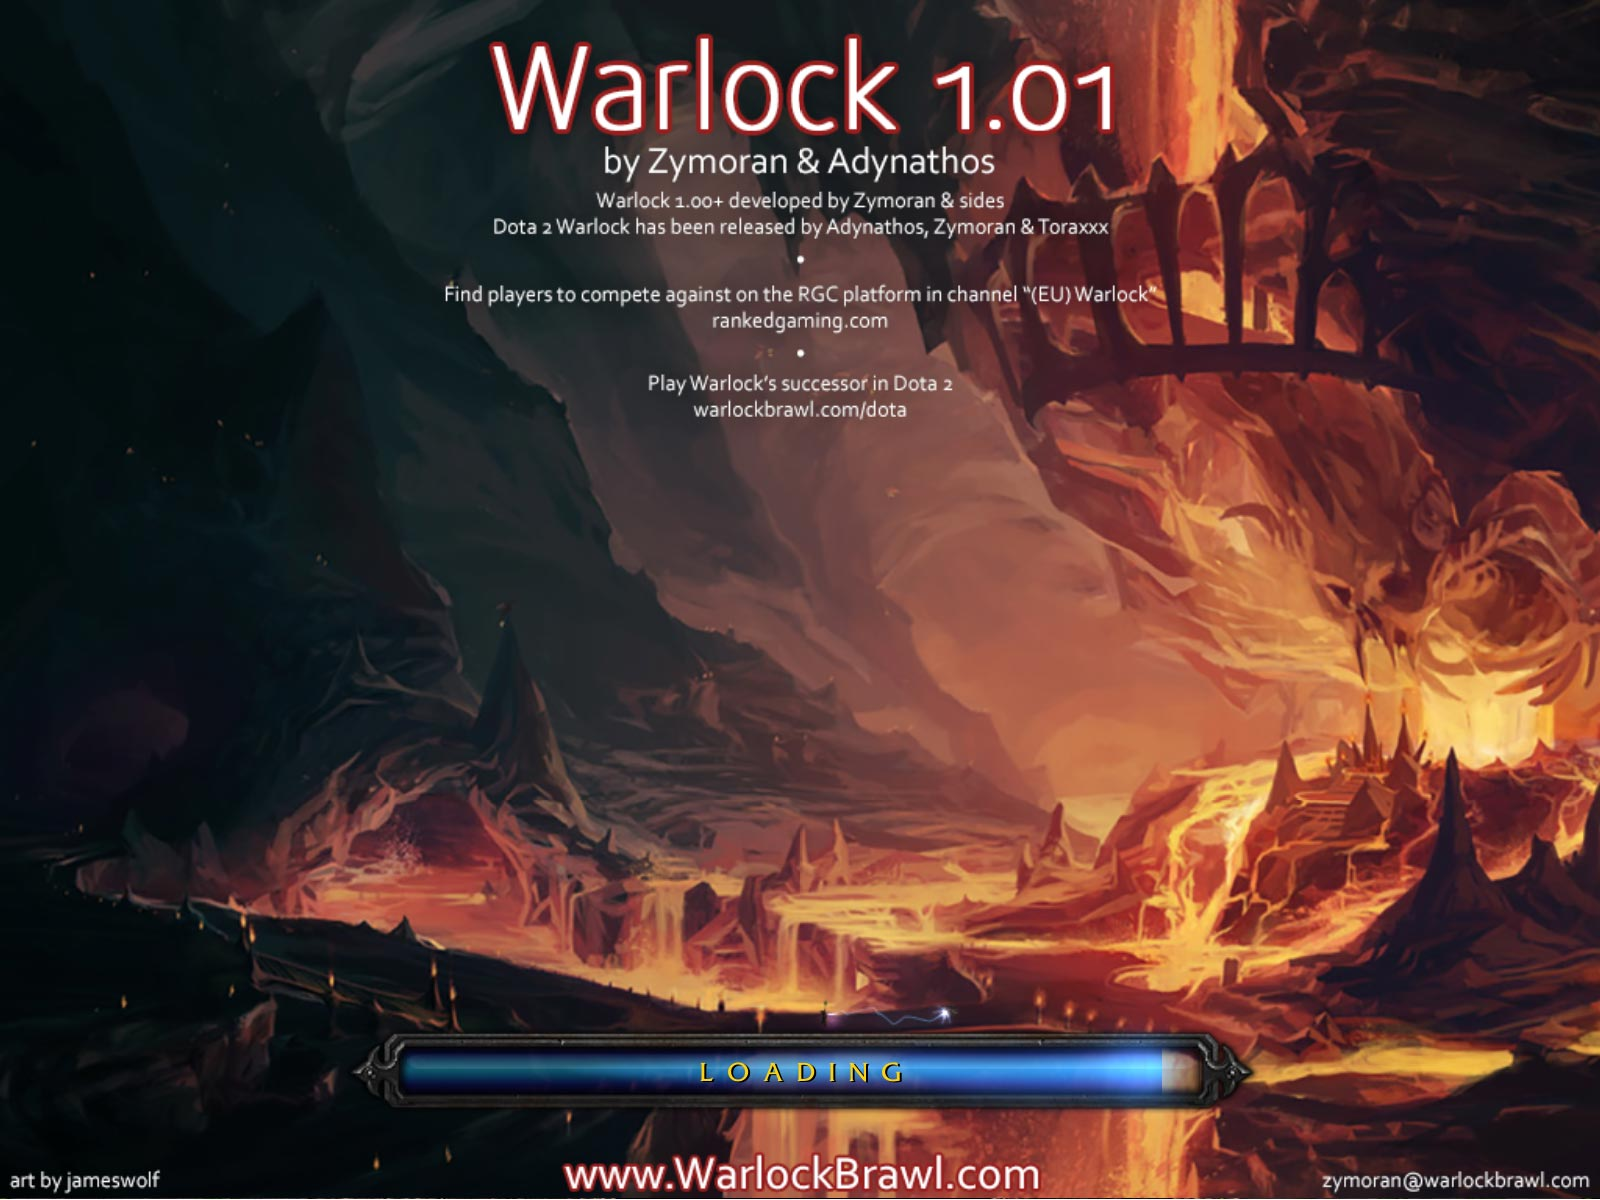 RGC Warlock Loading Screenshot